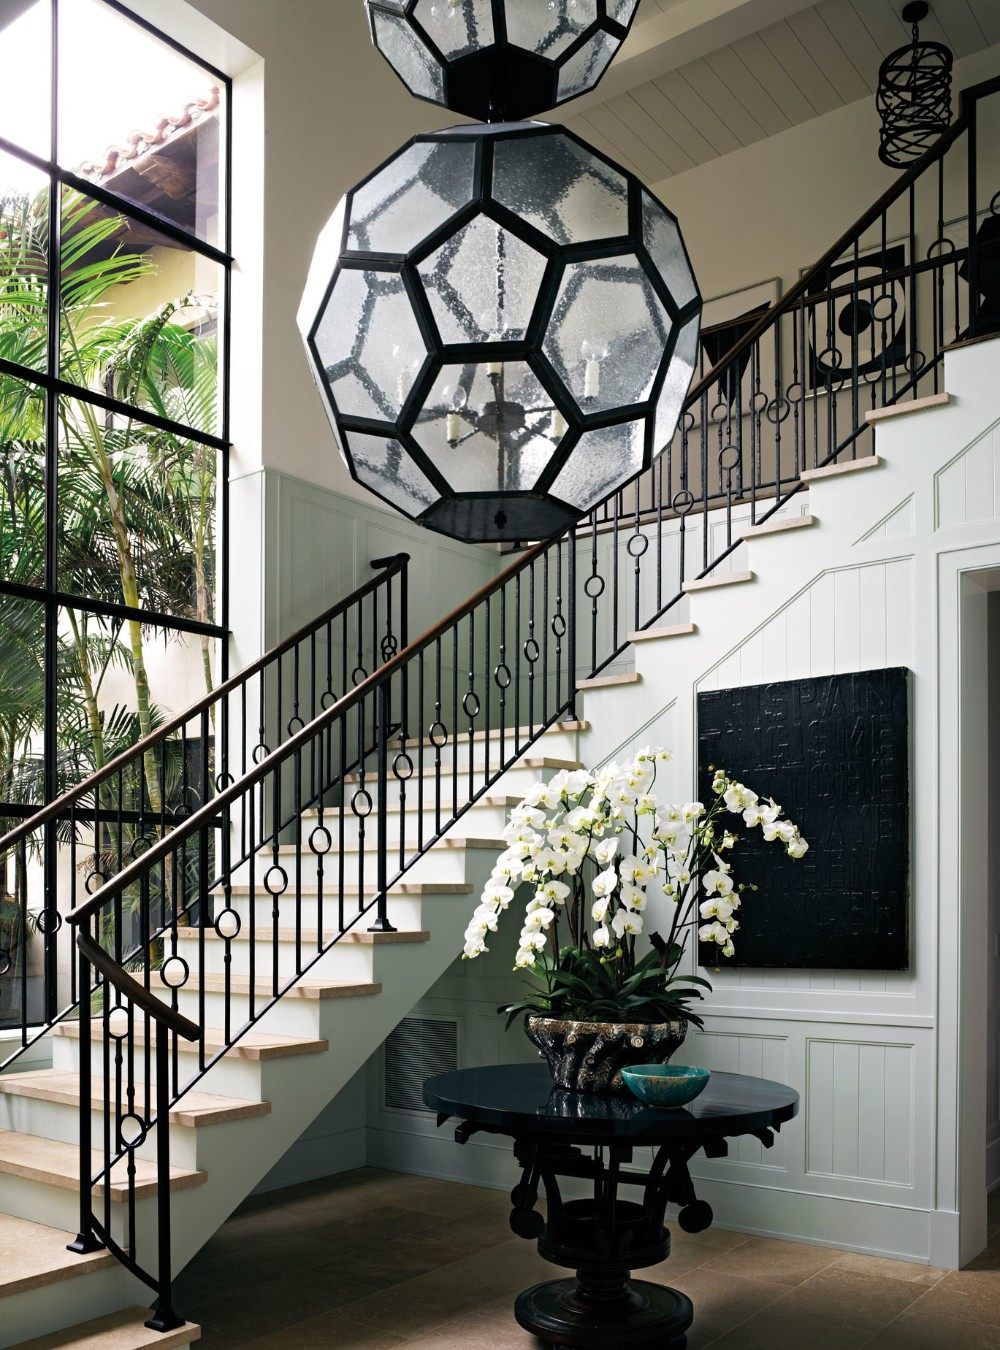 entryway lighting ideas 22 Outrageously Stunning Entryway Lighting Ideas 22 Outrageously Stunning Entryway Lighting Ideas 1 8